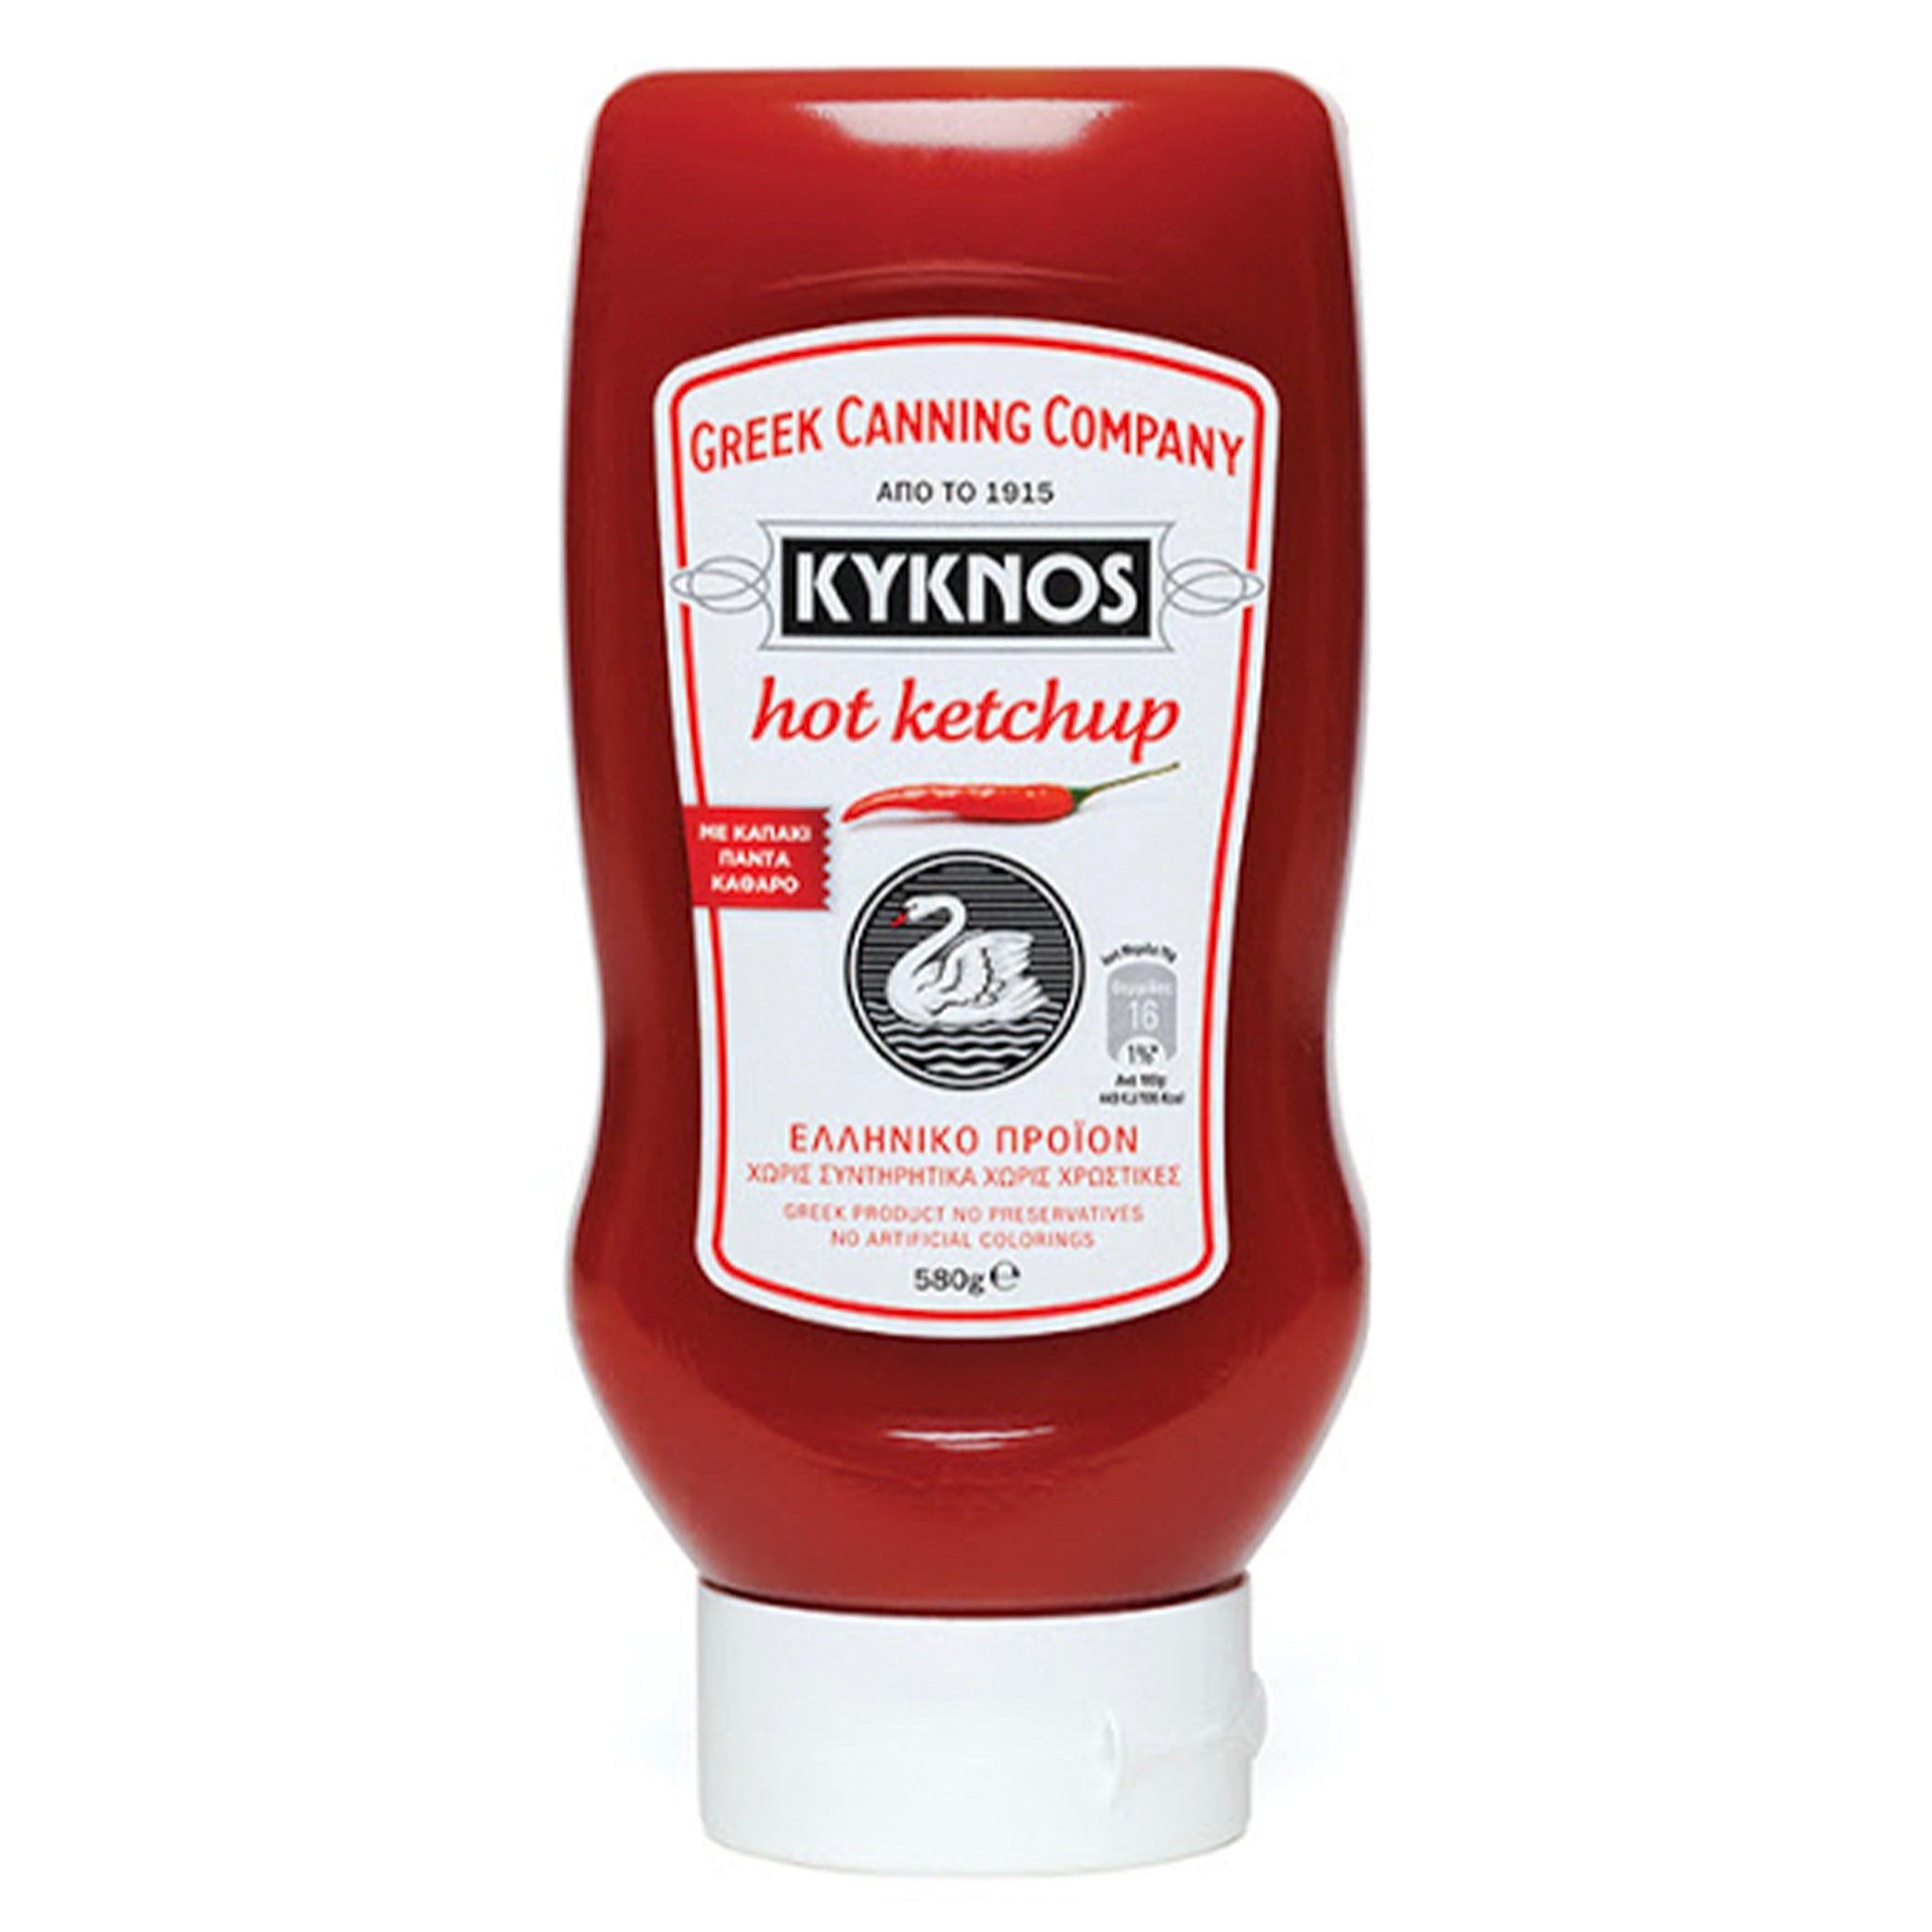 Kyknos Hot Tomato Ketchup Gluten Free 580 gr